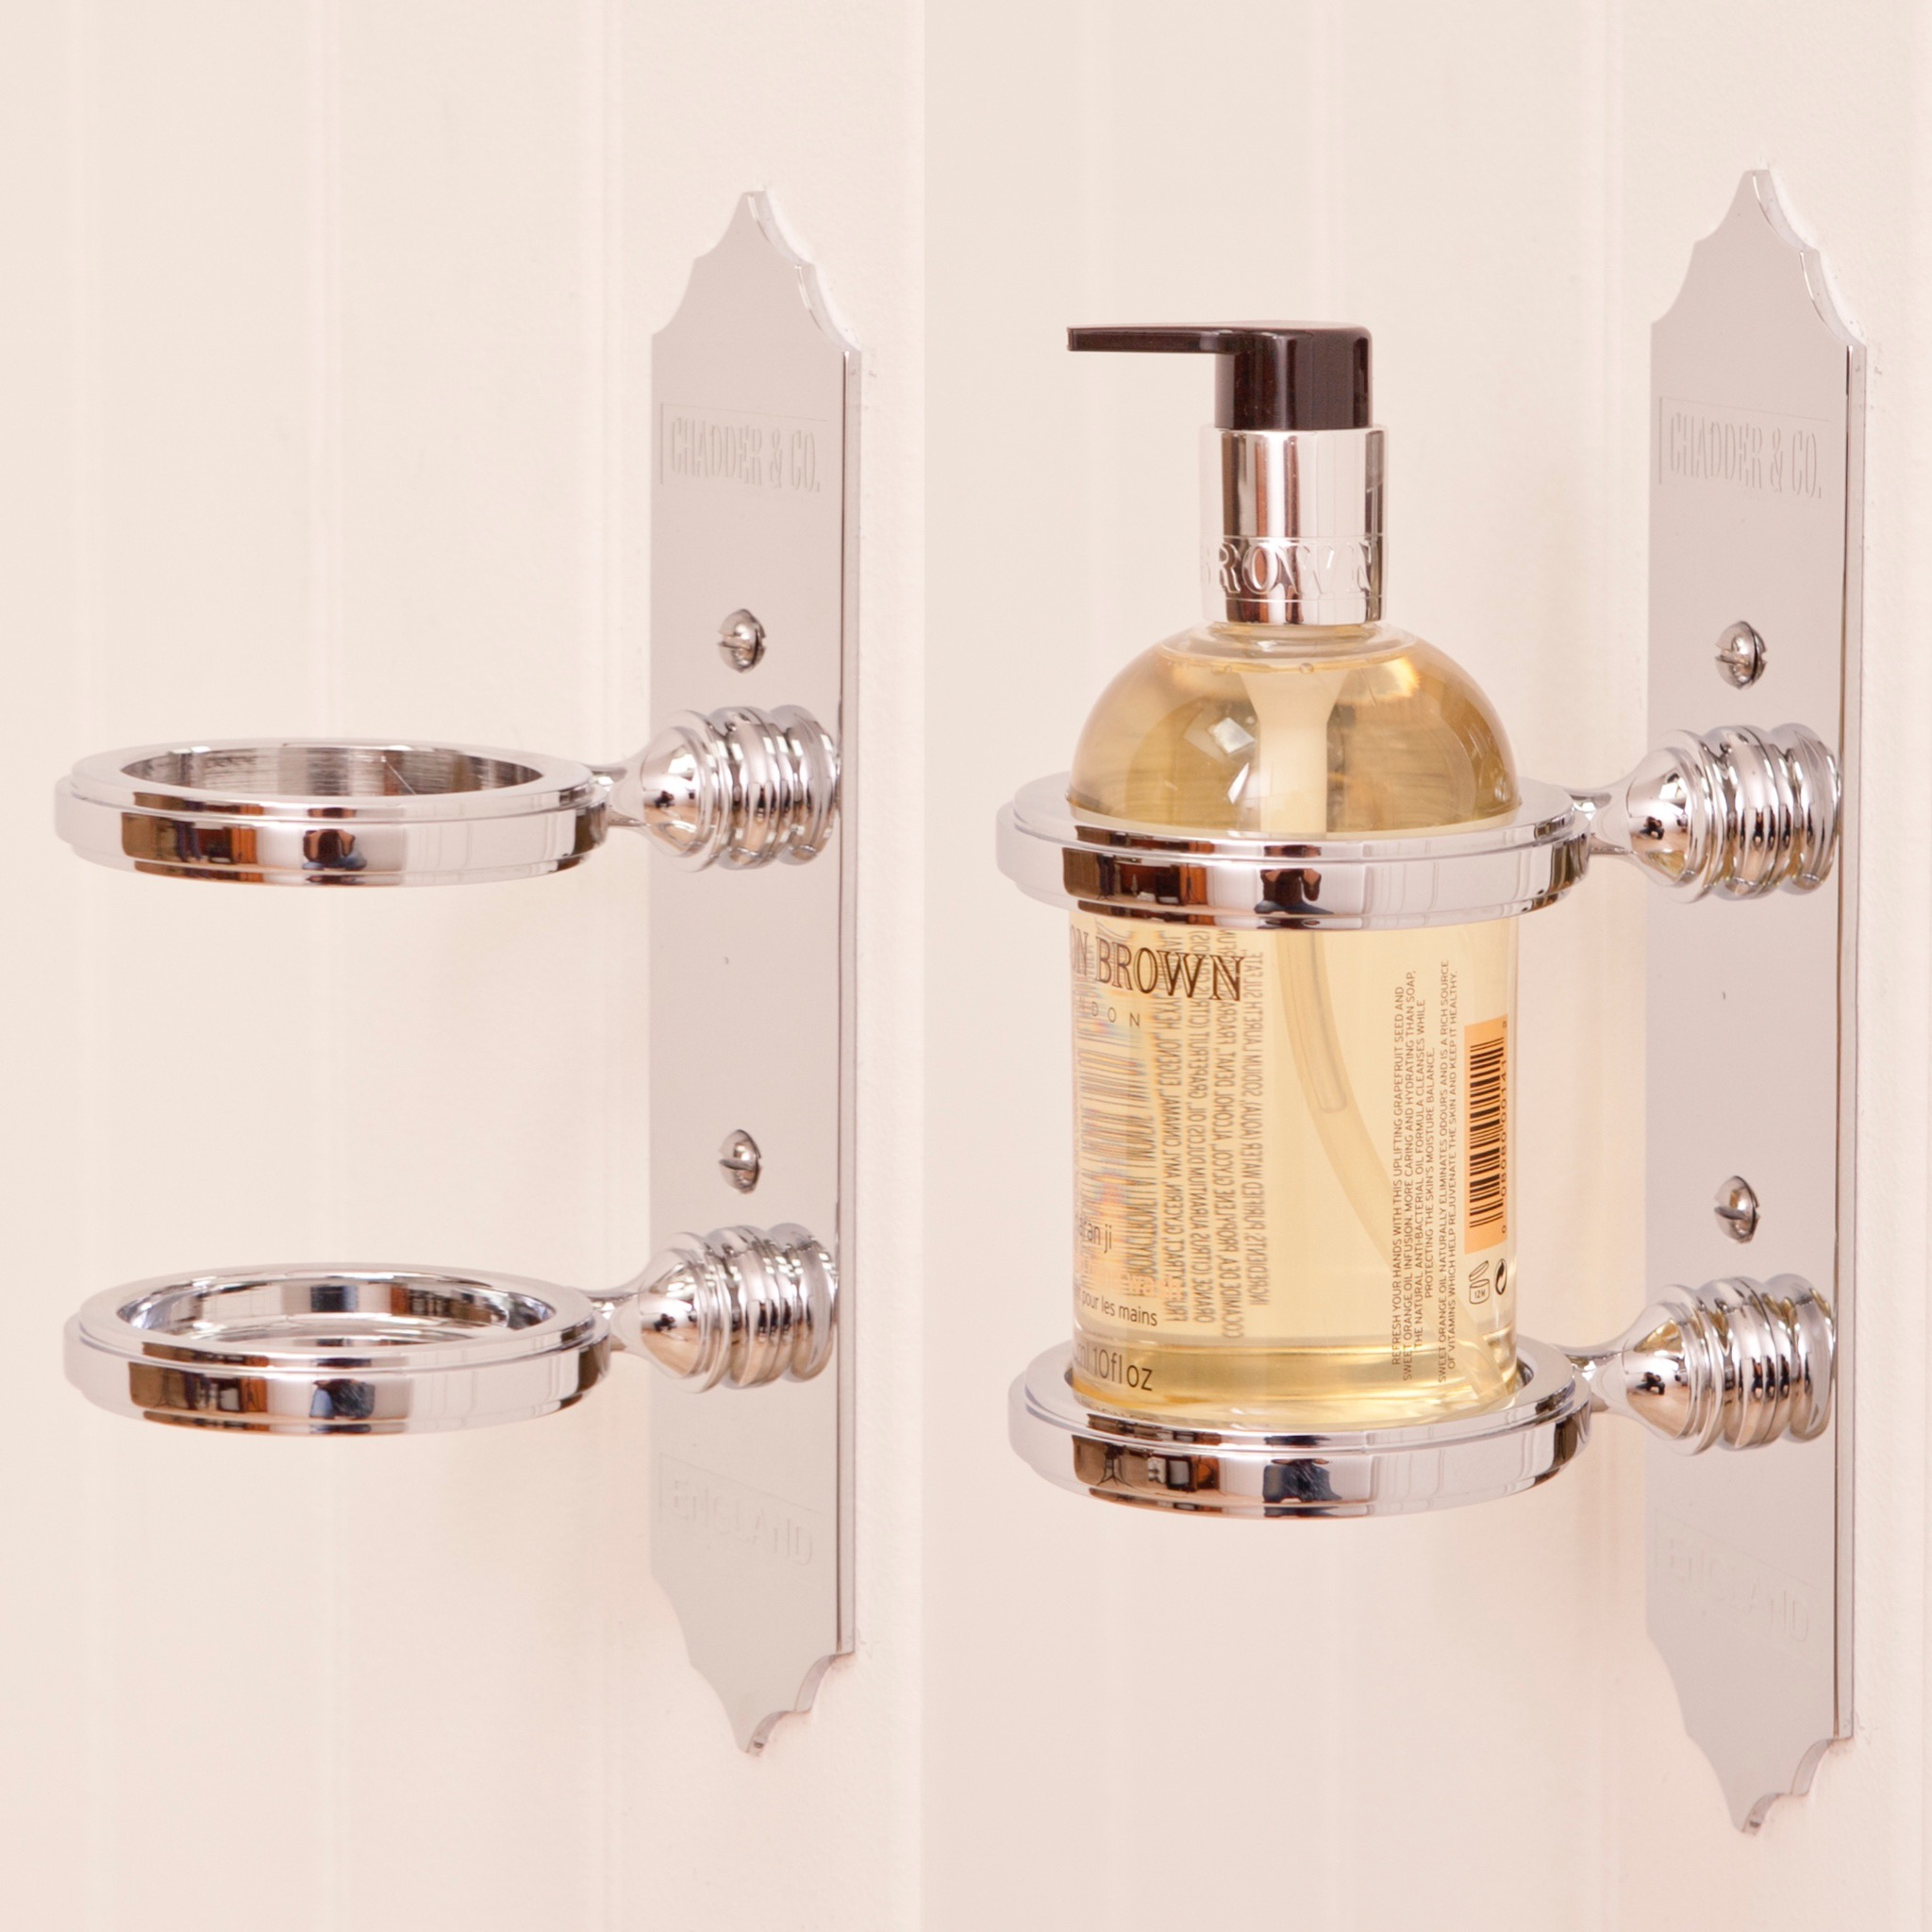 molton brown soap holder penhaligons bottle holder bathroom accessory chrome nickel